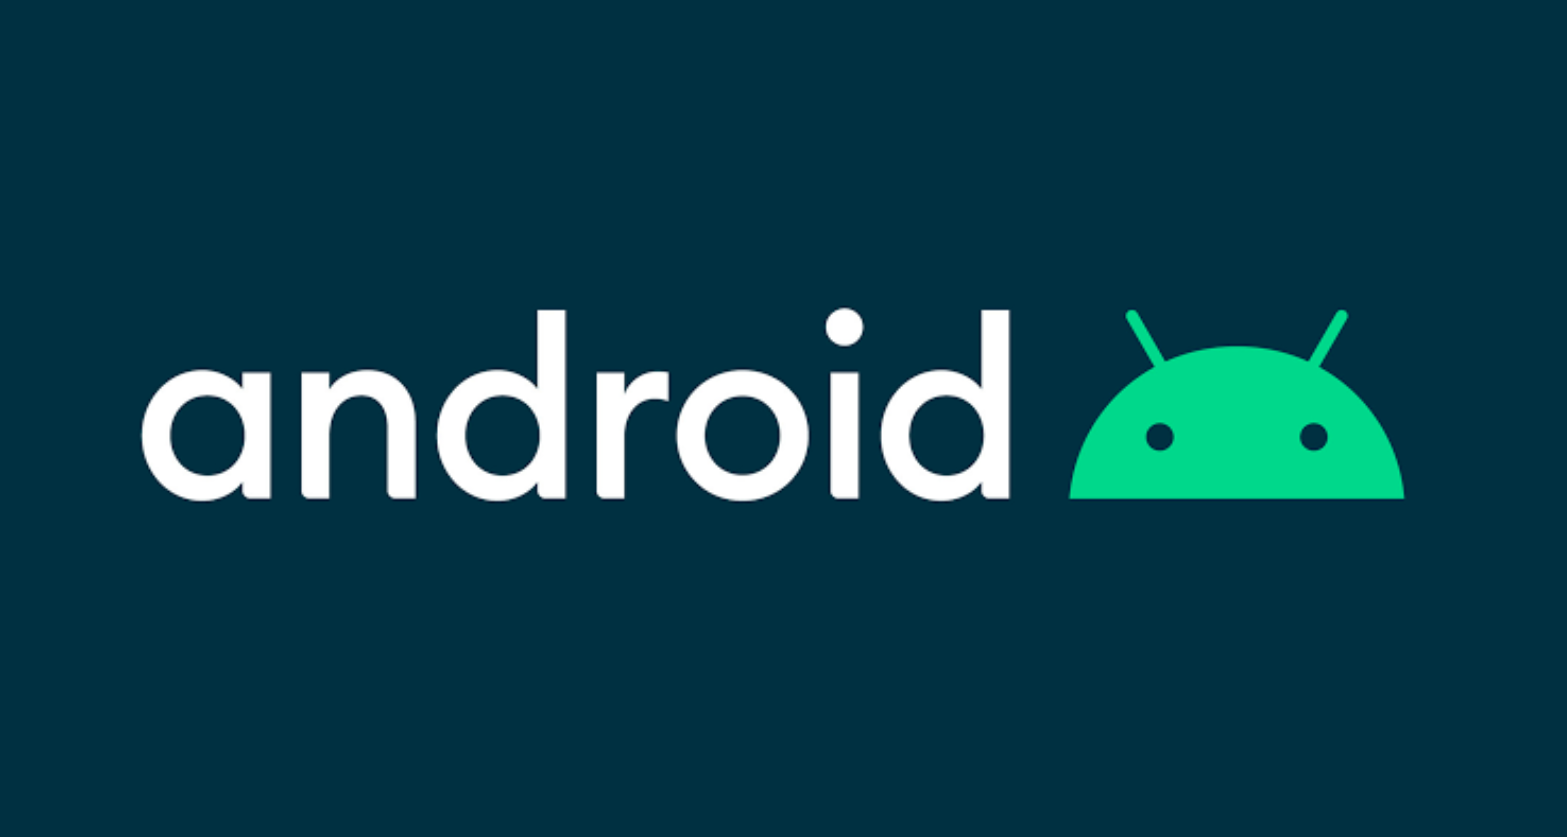 Google adds double tap gestures in Android 11 to trigger specific actions without new hardware